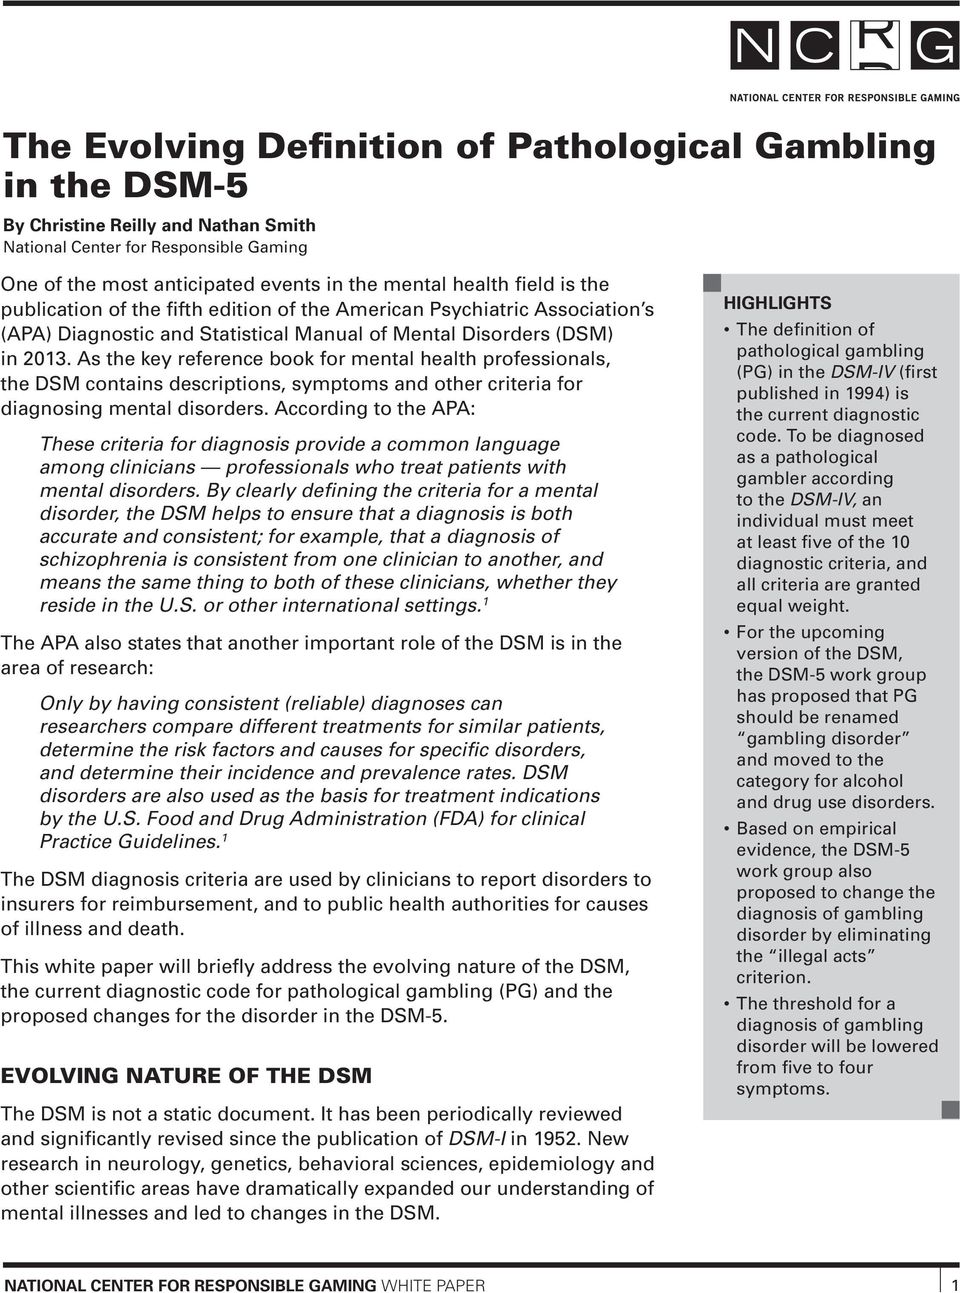 As the key reference book for mental health professionals, the DSM contains descriptions, symptoms and other criteria for diagnosing mental disorders.